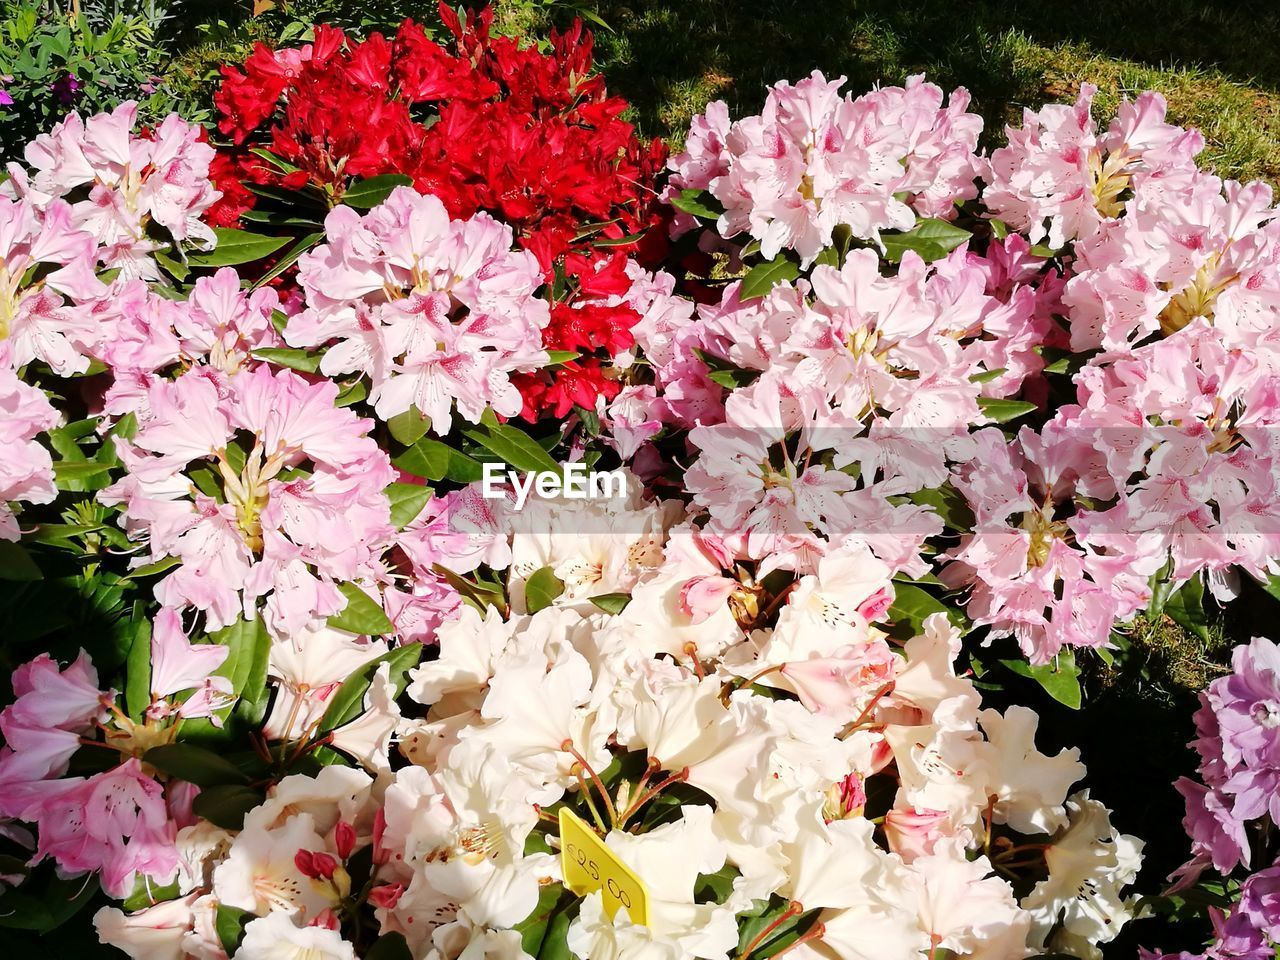 flowering plant, flower, vulnerability, fragility, plant, freshness, beauty in nature, petal, pink color, growth, close-up, flower head, inflorescence, nature, no people, day, springtime, abundance, outdoors, botany, bunch of flowers, bouquet, flower arrangement, flowerbed, spring